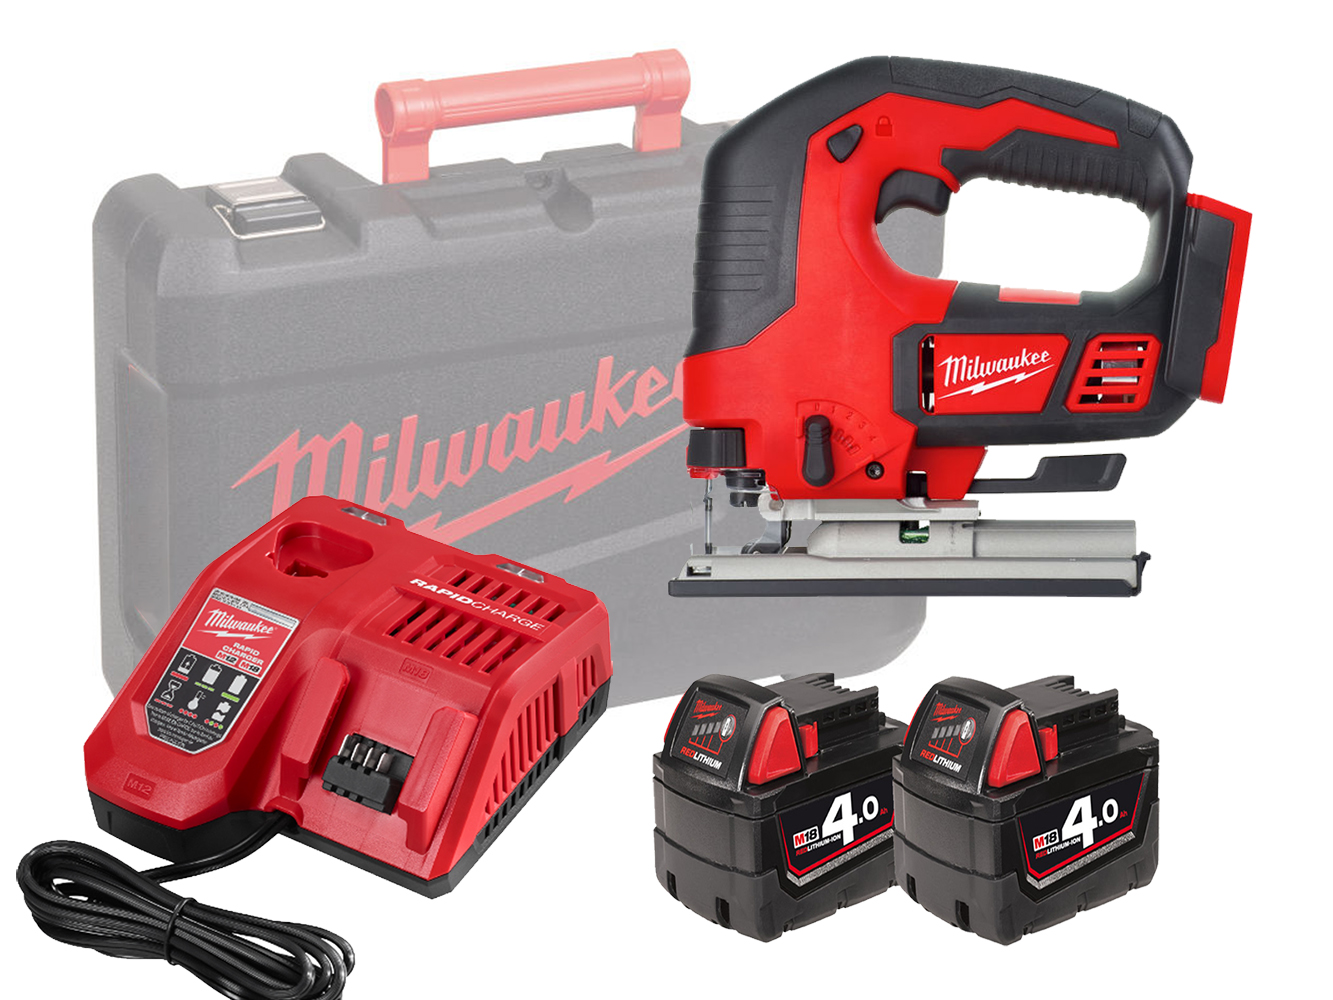 MILWAUKEE 18V HEAVY-DUTY TOP HANDLE JIGSAW - M18BJS - 4.0AH PACK